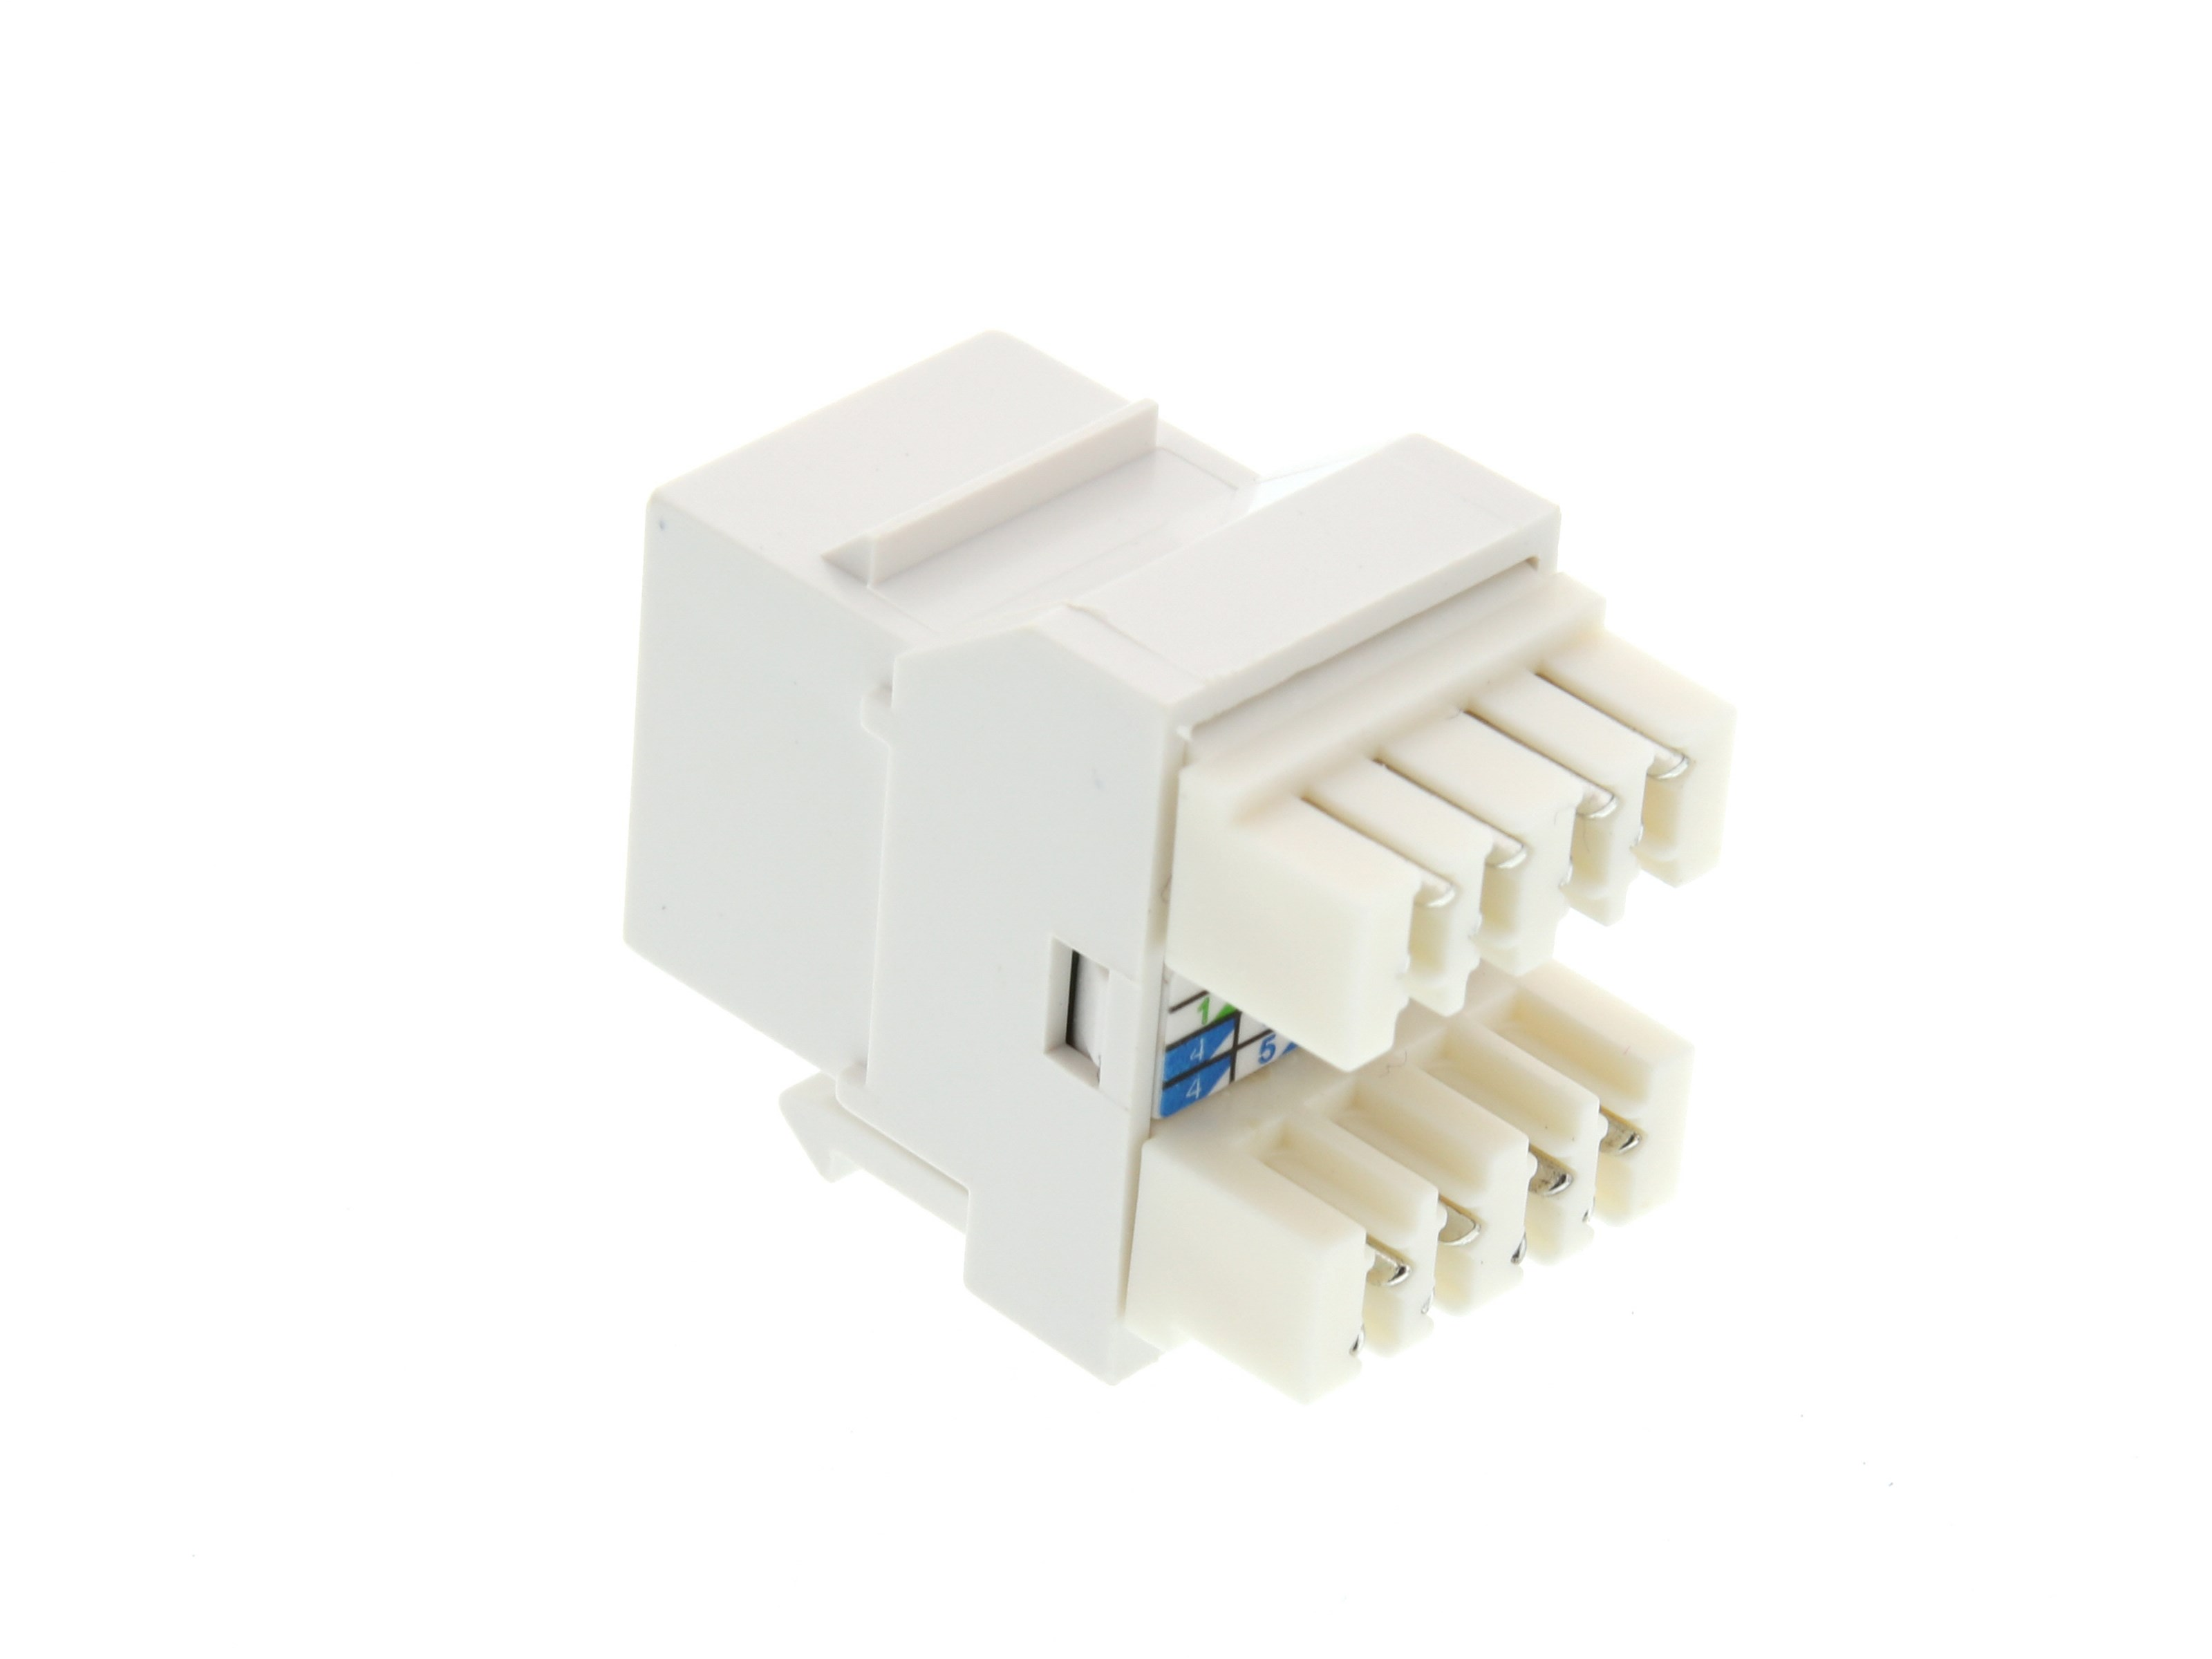 Cat6 Speedterm Keystone Jack 180 Degree 110 Utp White Computer Rj45 Connector Cat 6 Modular Plug Picture Of